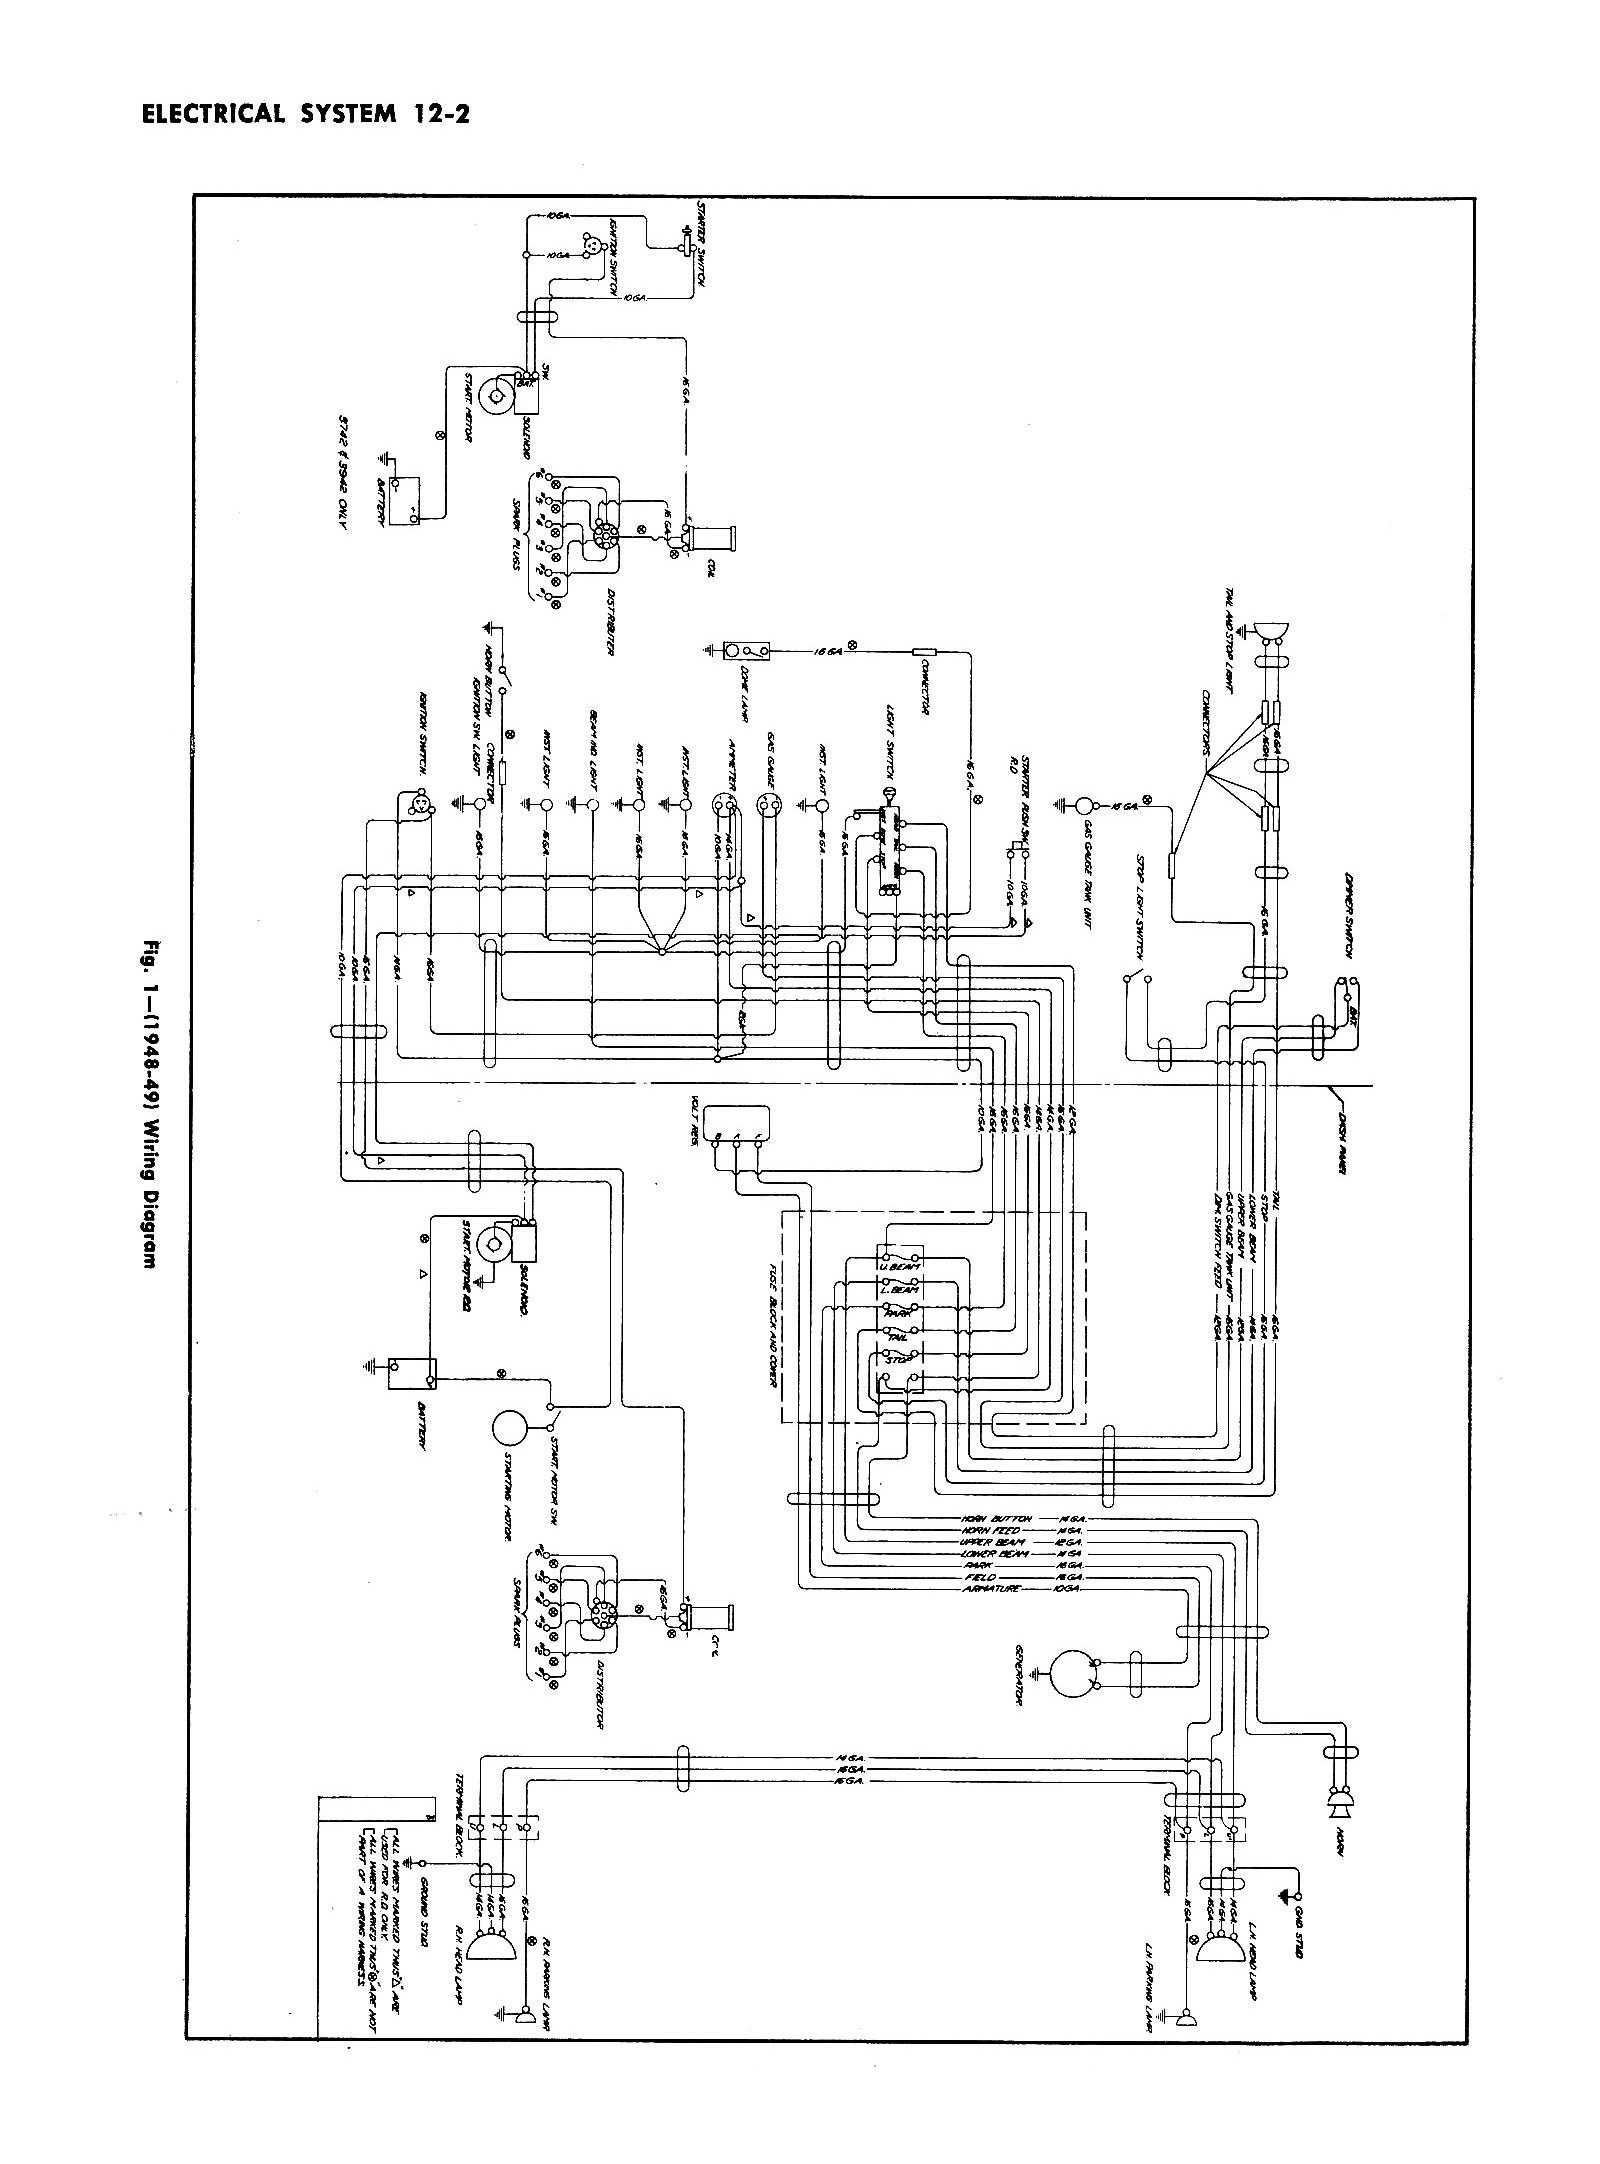 1984 tvr 280i tasmin wiring diagram   35 wiring diagram